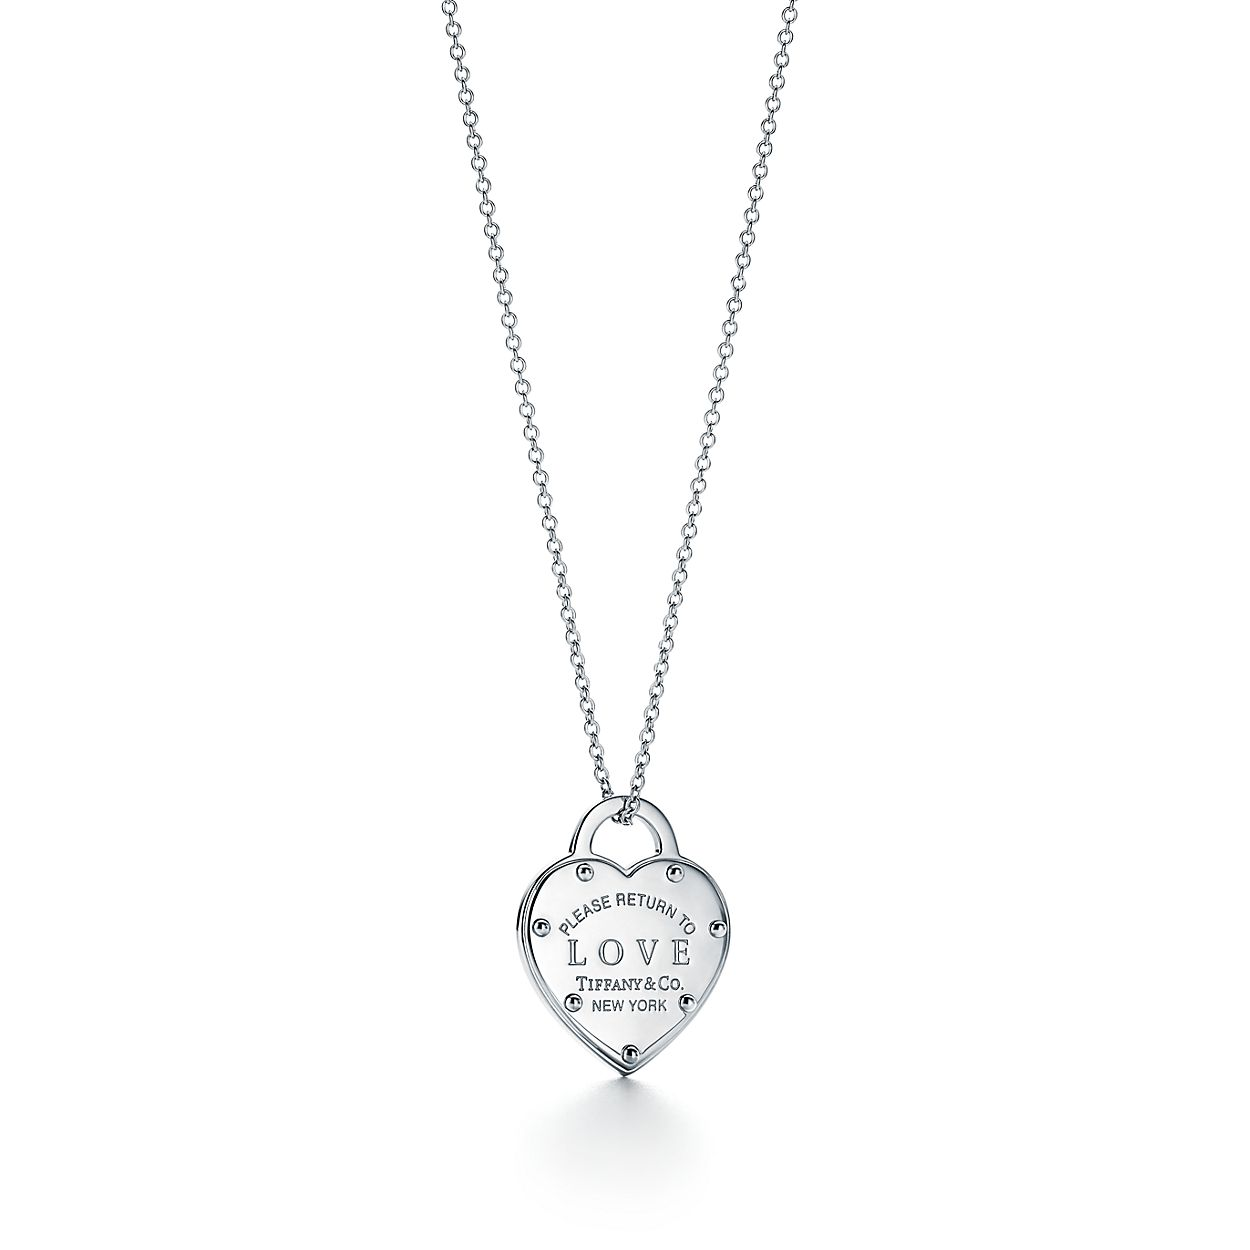 Return to Tiffany® Sterling Silver Love Heart Pendant   Tiffany   Co ... 136b362621